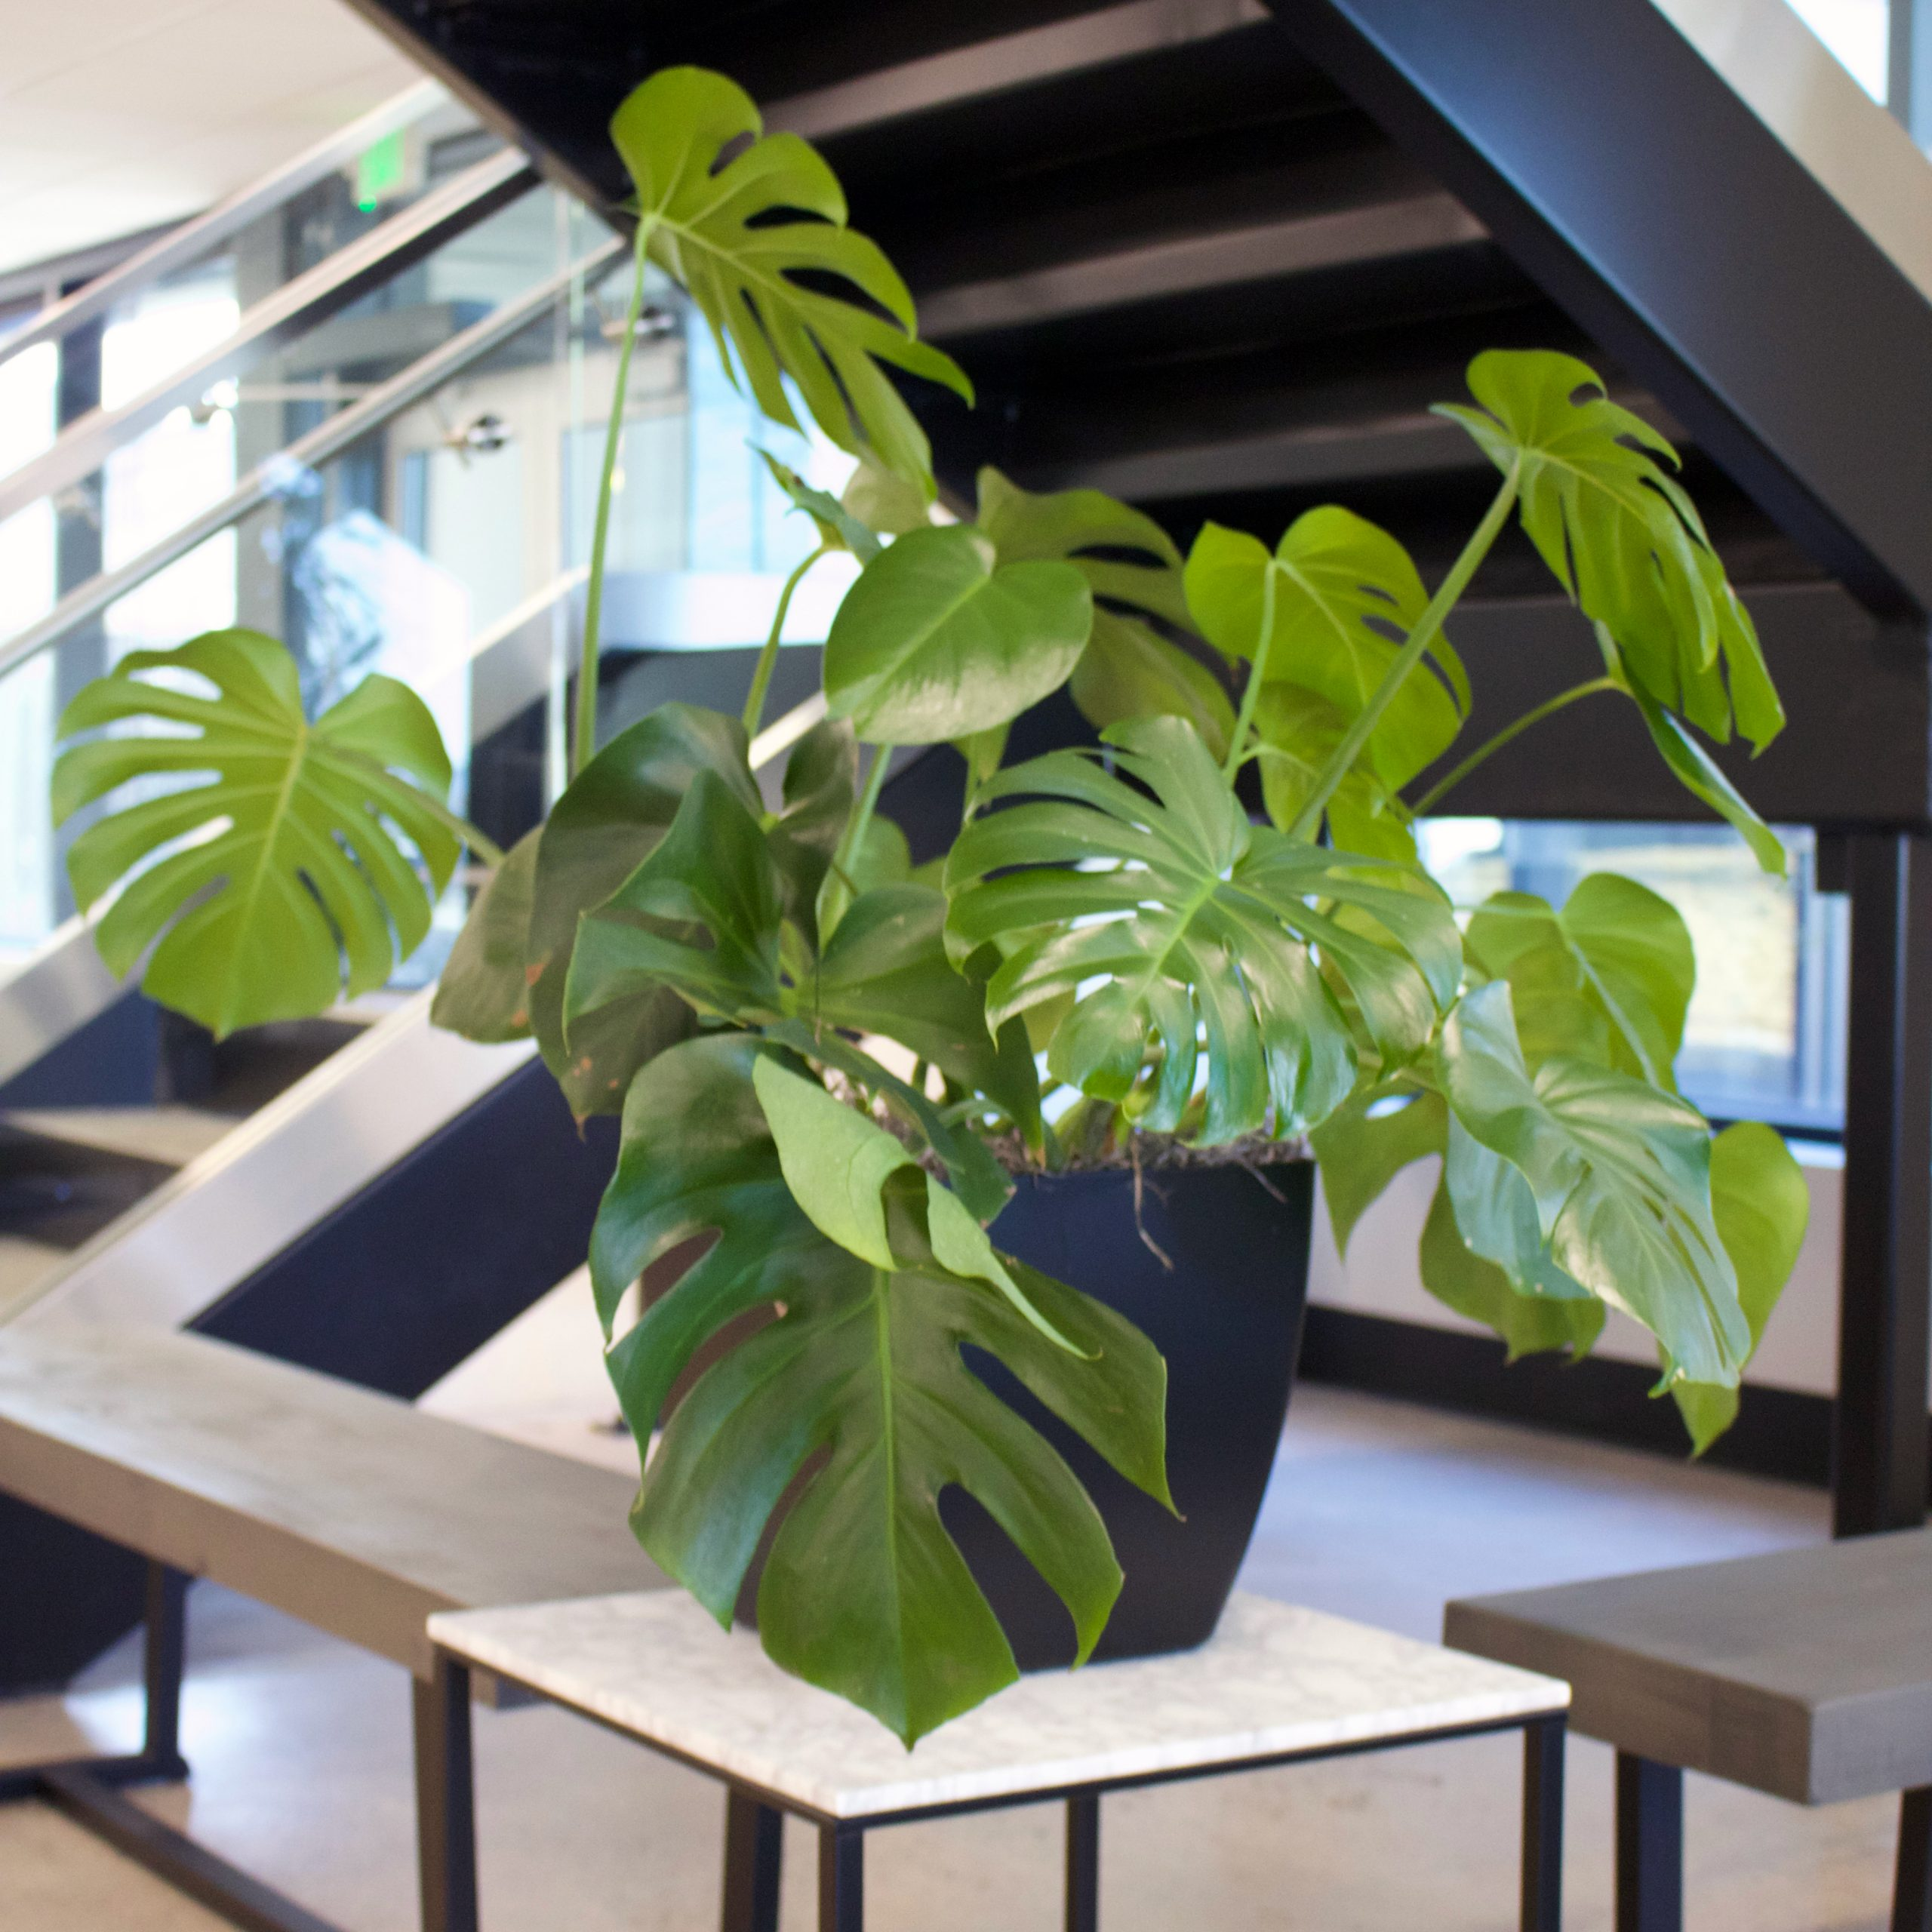 Interior Flowering Plants, Foliage Plants & Plant Containers